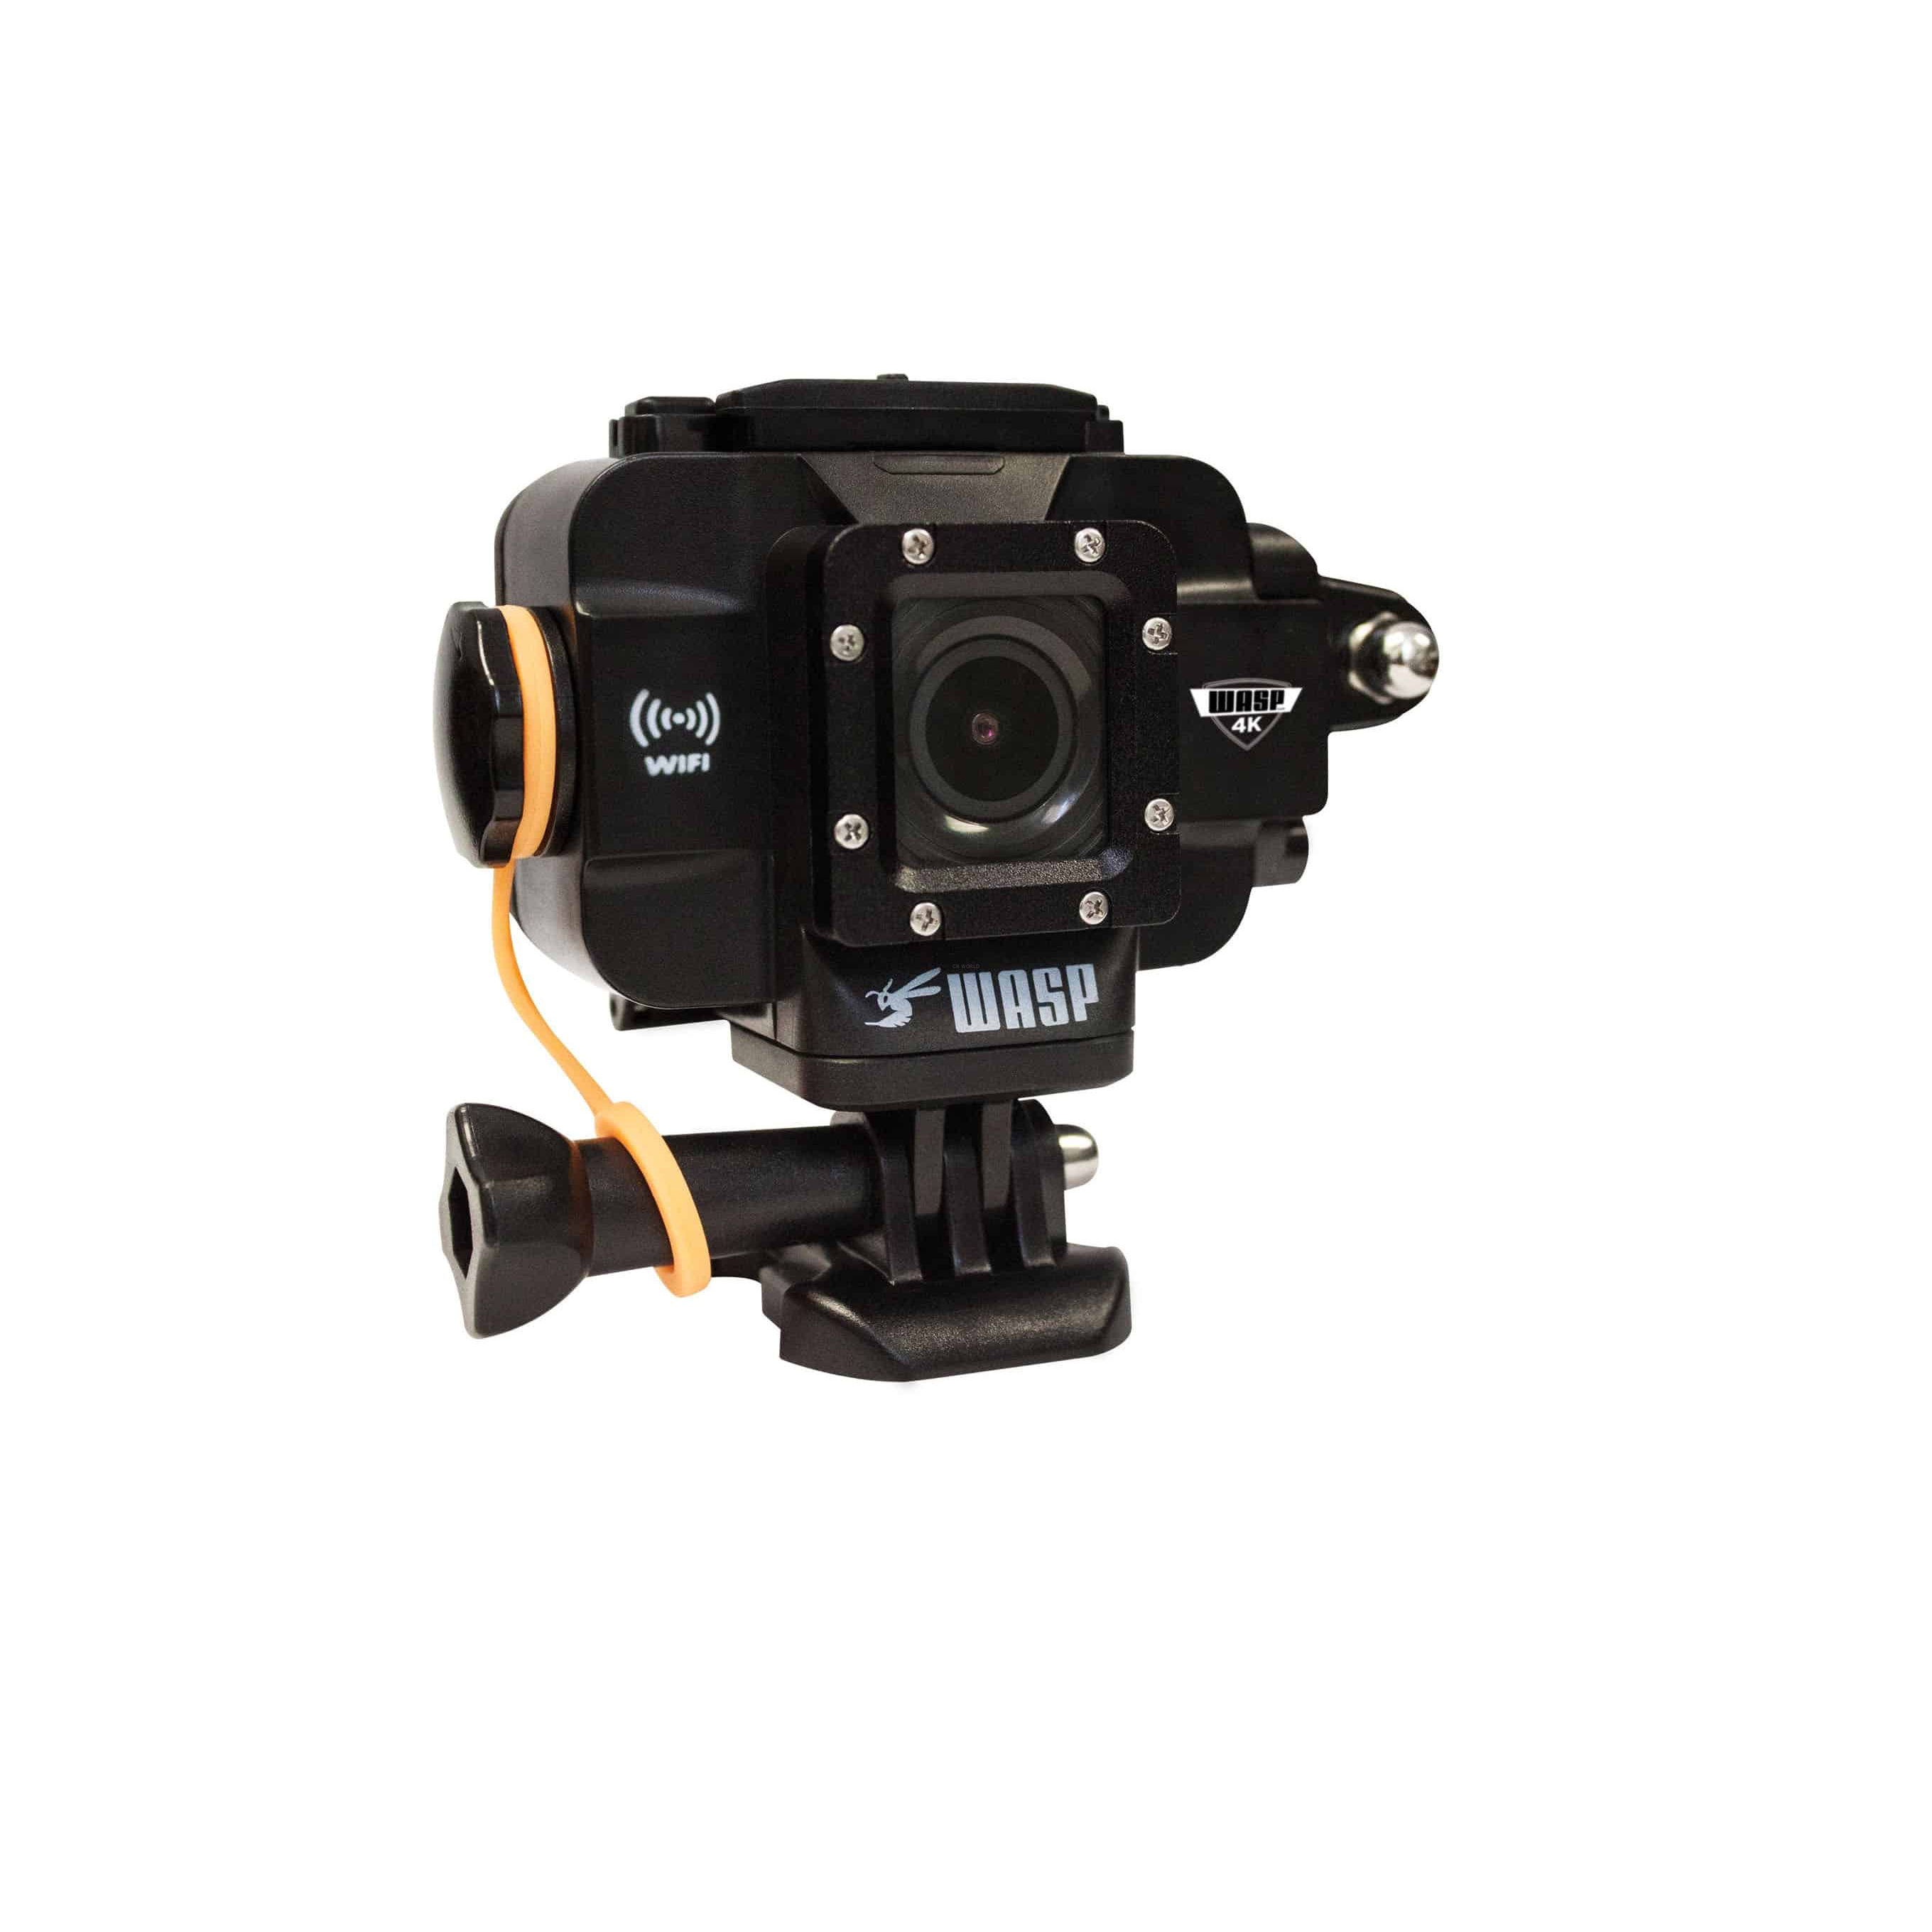 W9907 Action Camera